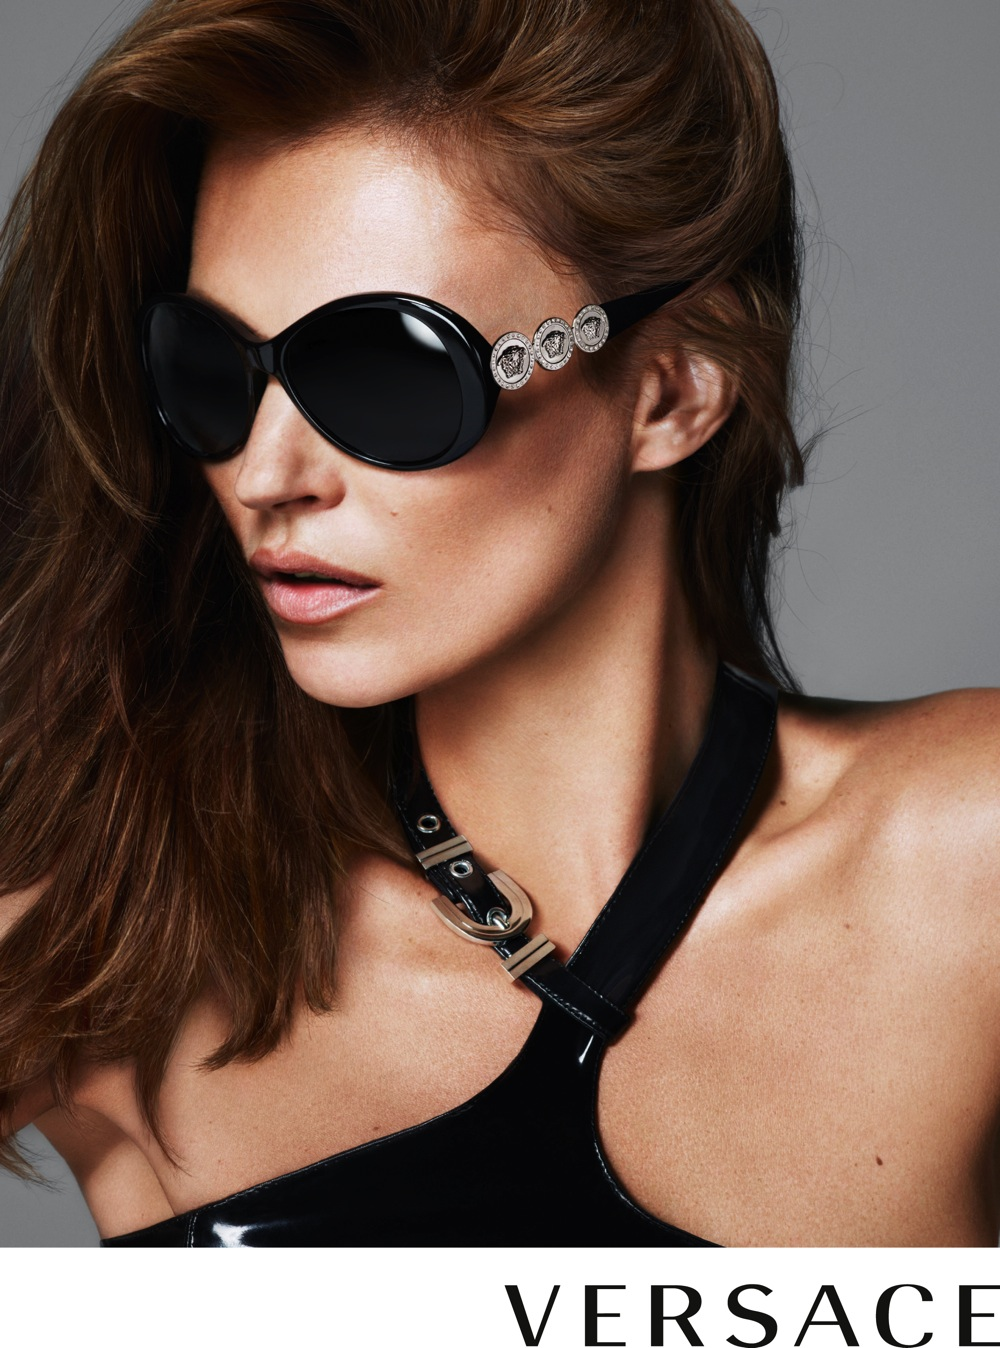 VERSACE_KATE MOSS POUR _ICON STONES__2